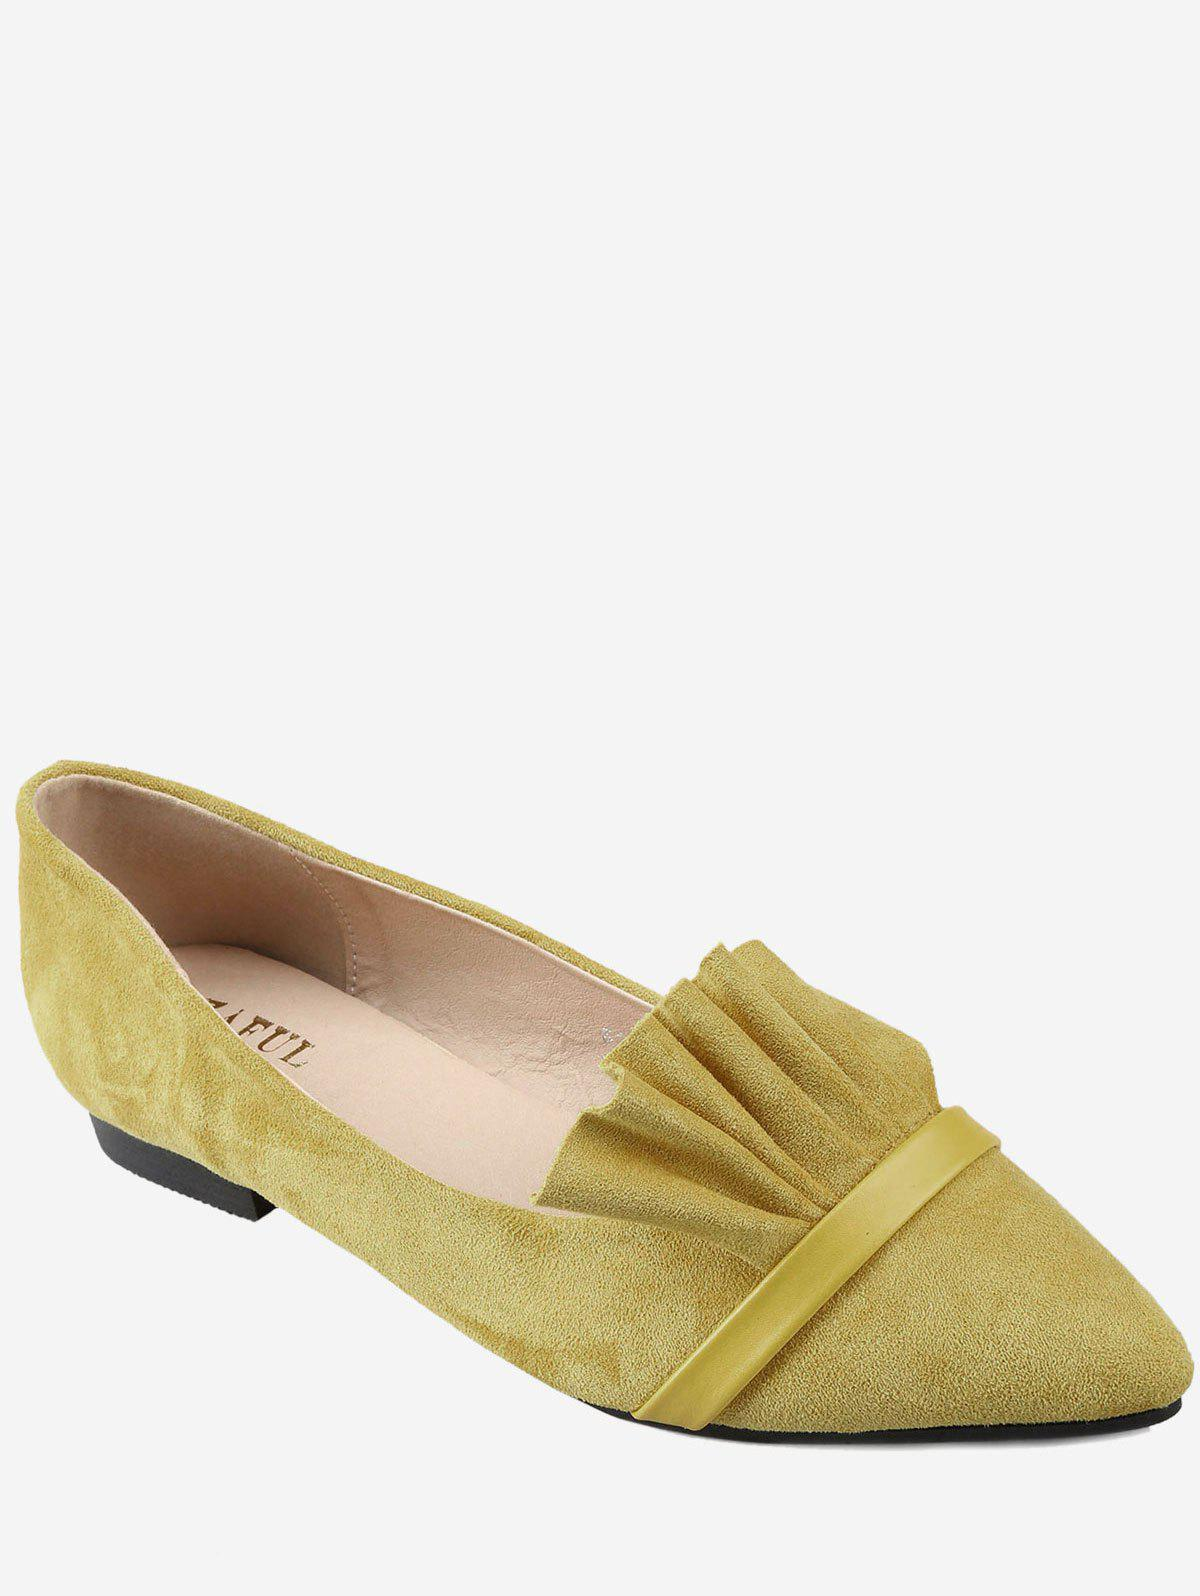 Chic Chic Slip On Ruffles Pointed Toe Flats